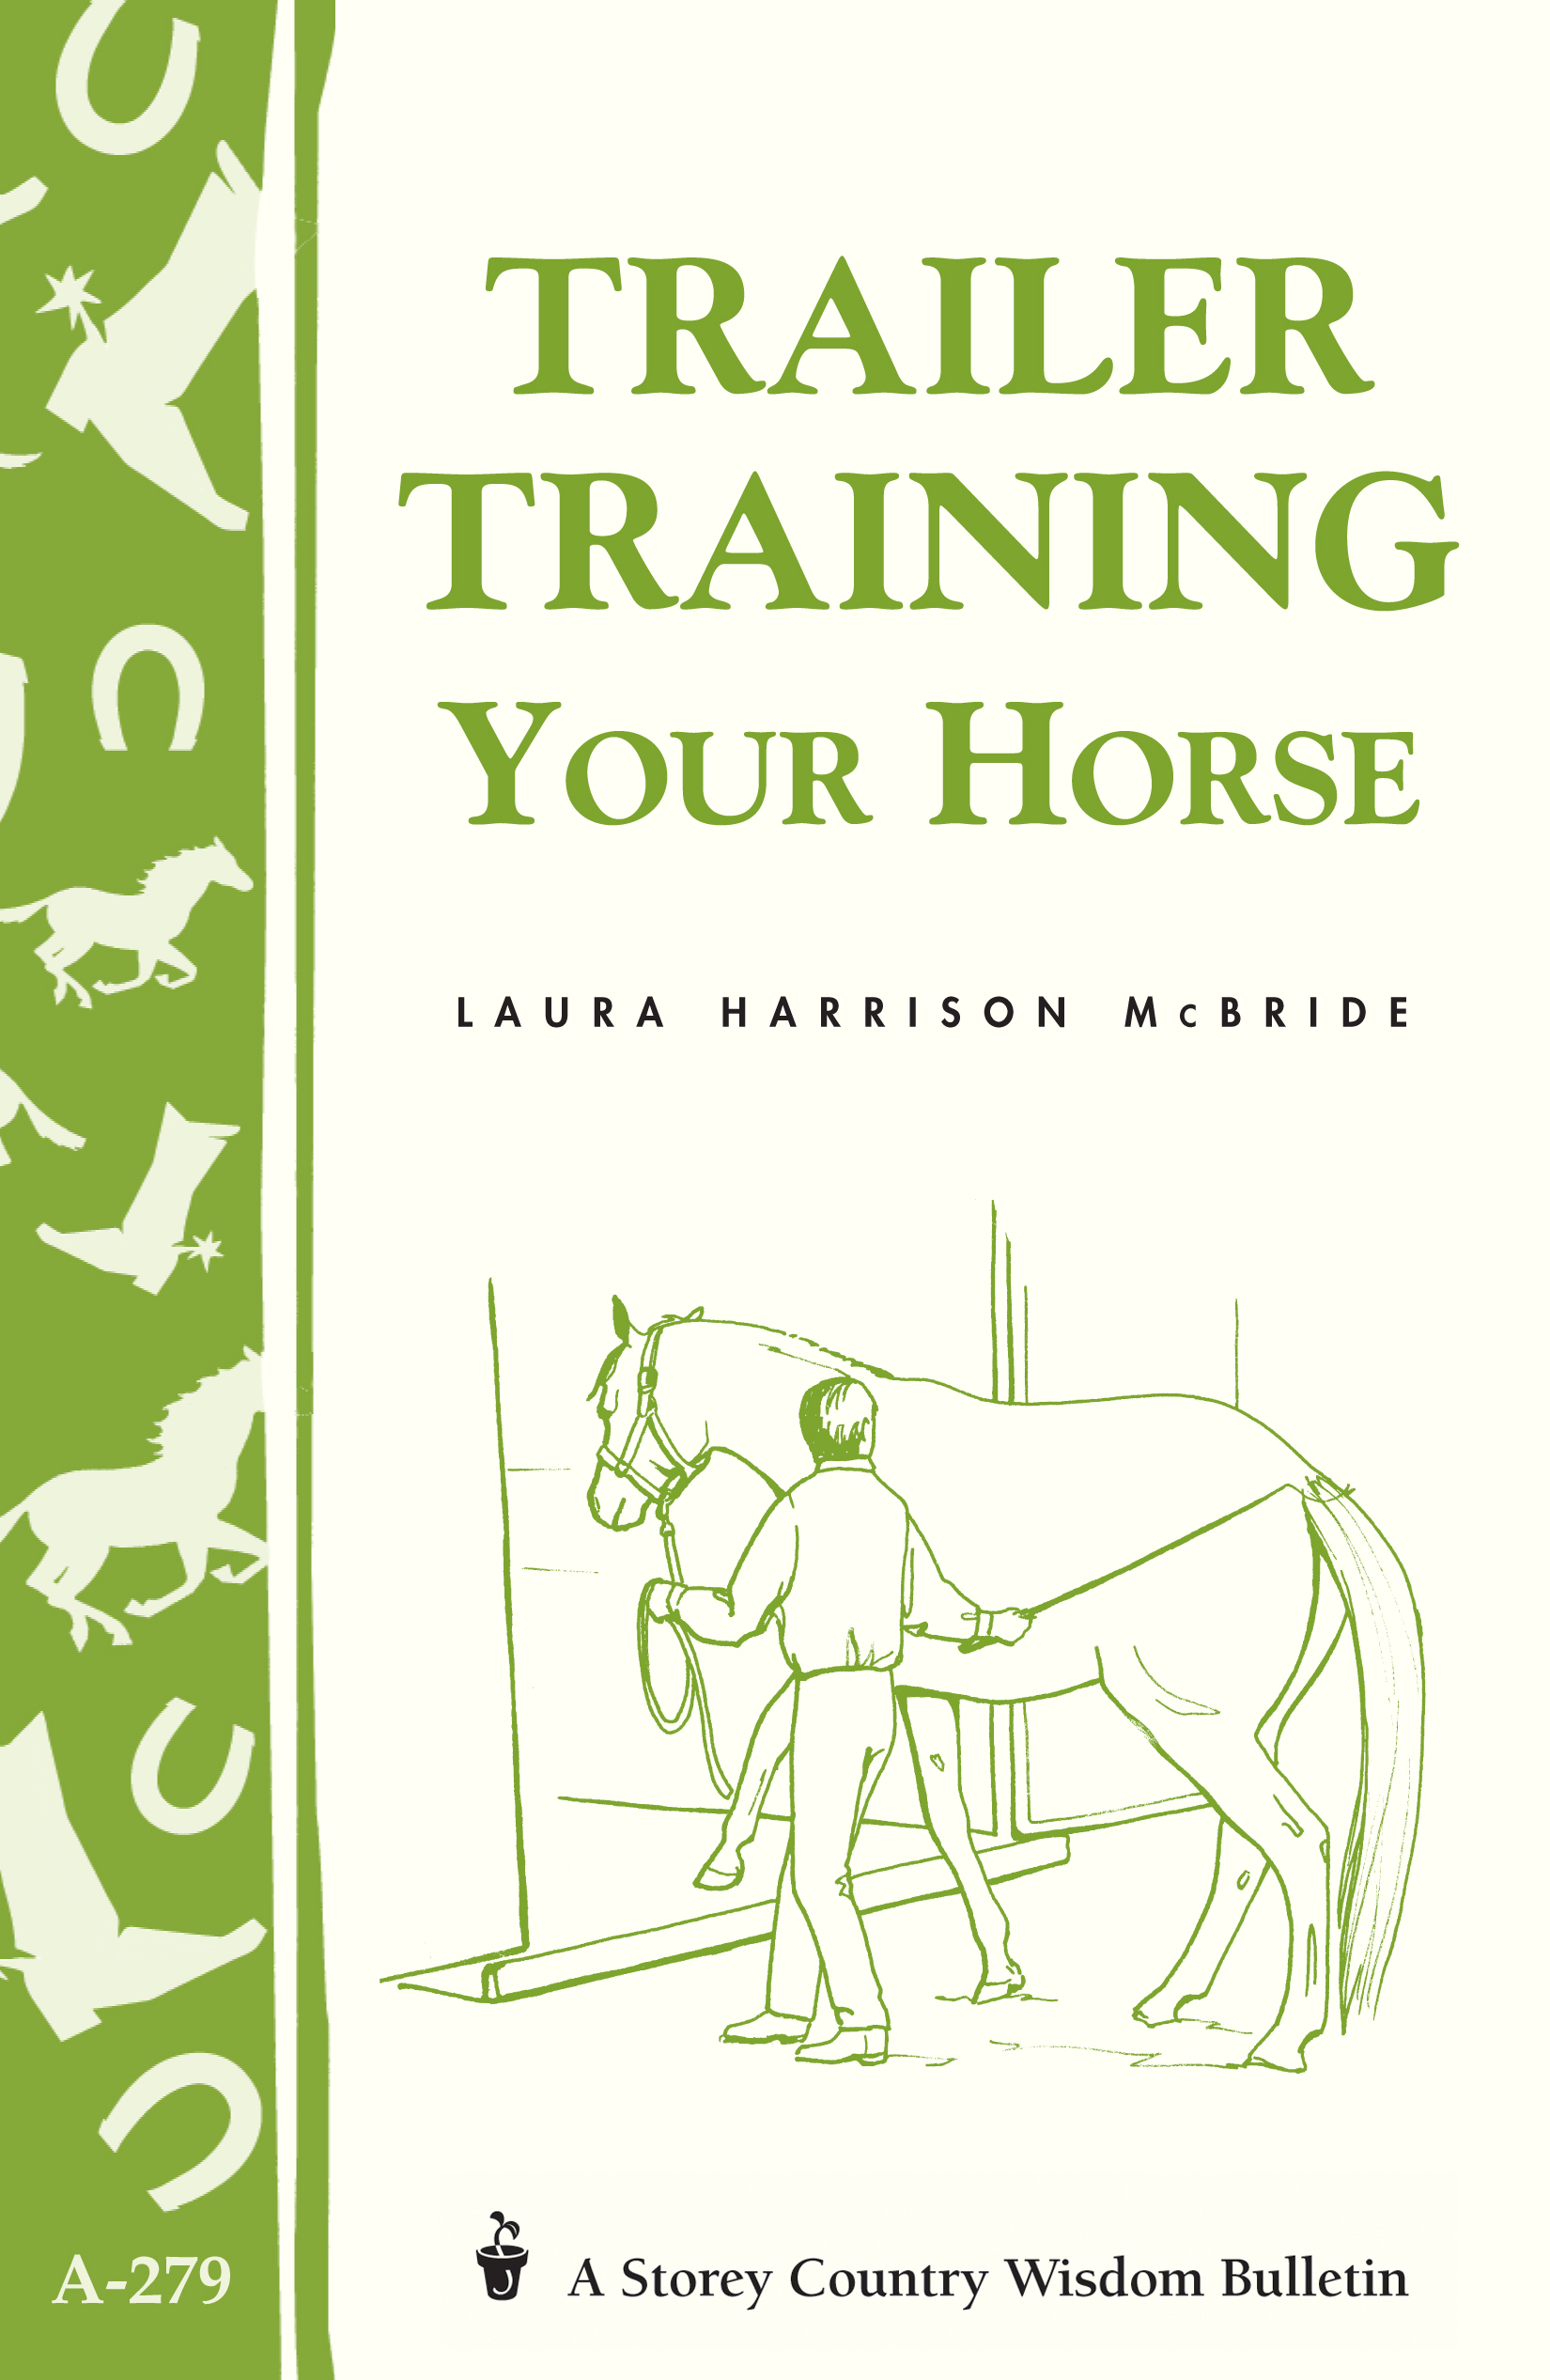 Trailer-Training Your Horse Storey's Country Wisdom Bulletin A-279 - Laura Harrison McBride